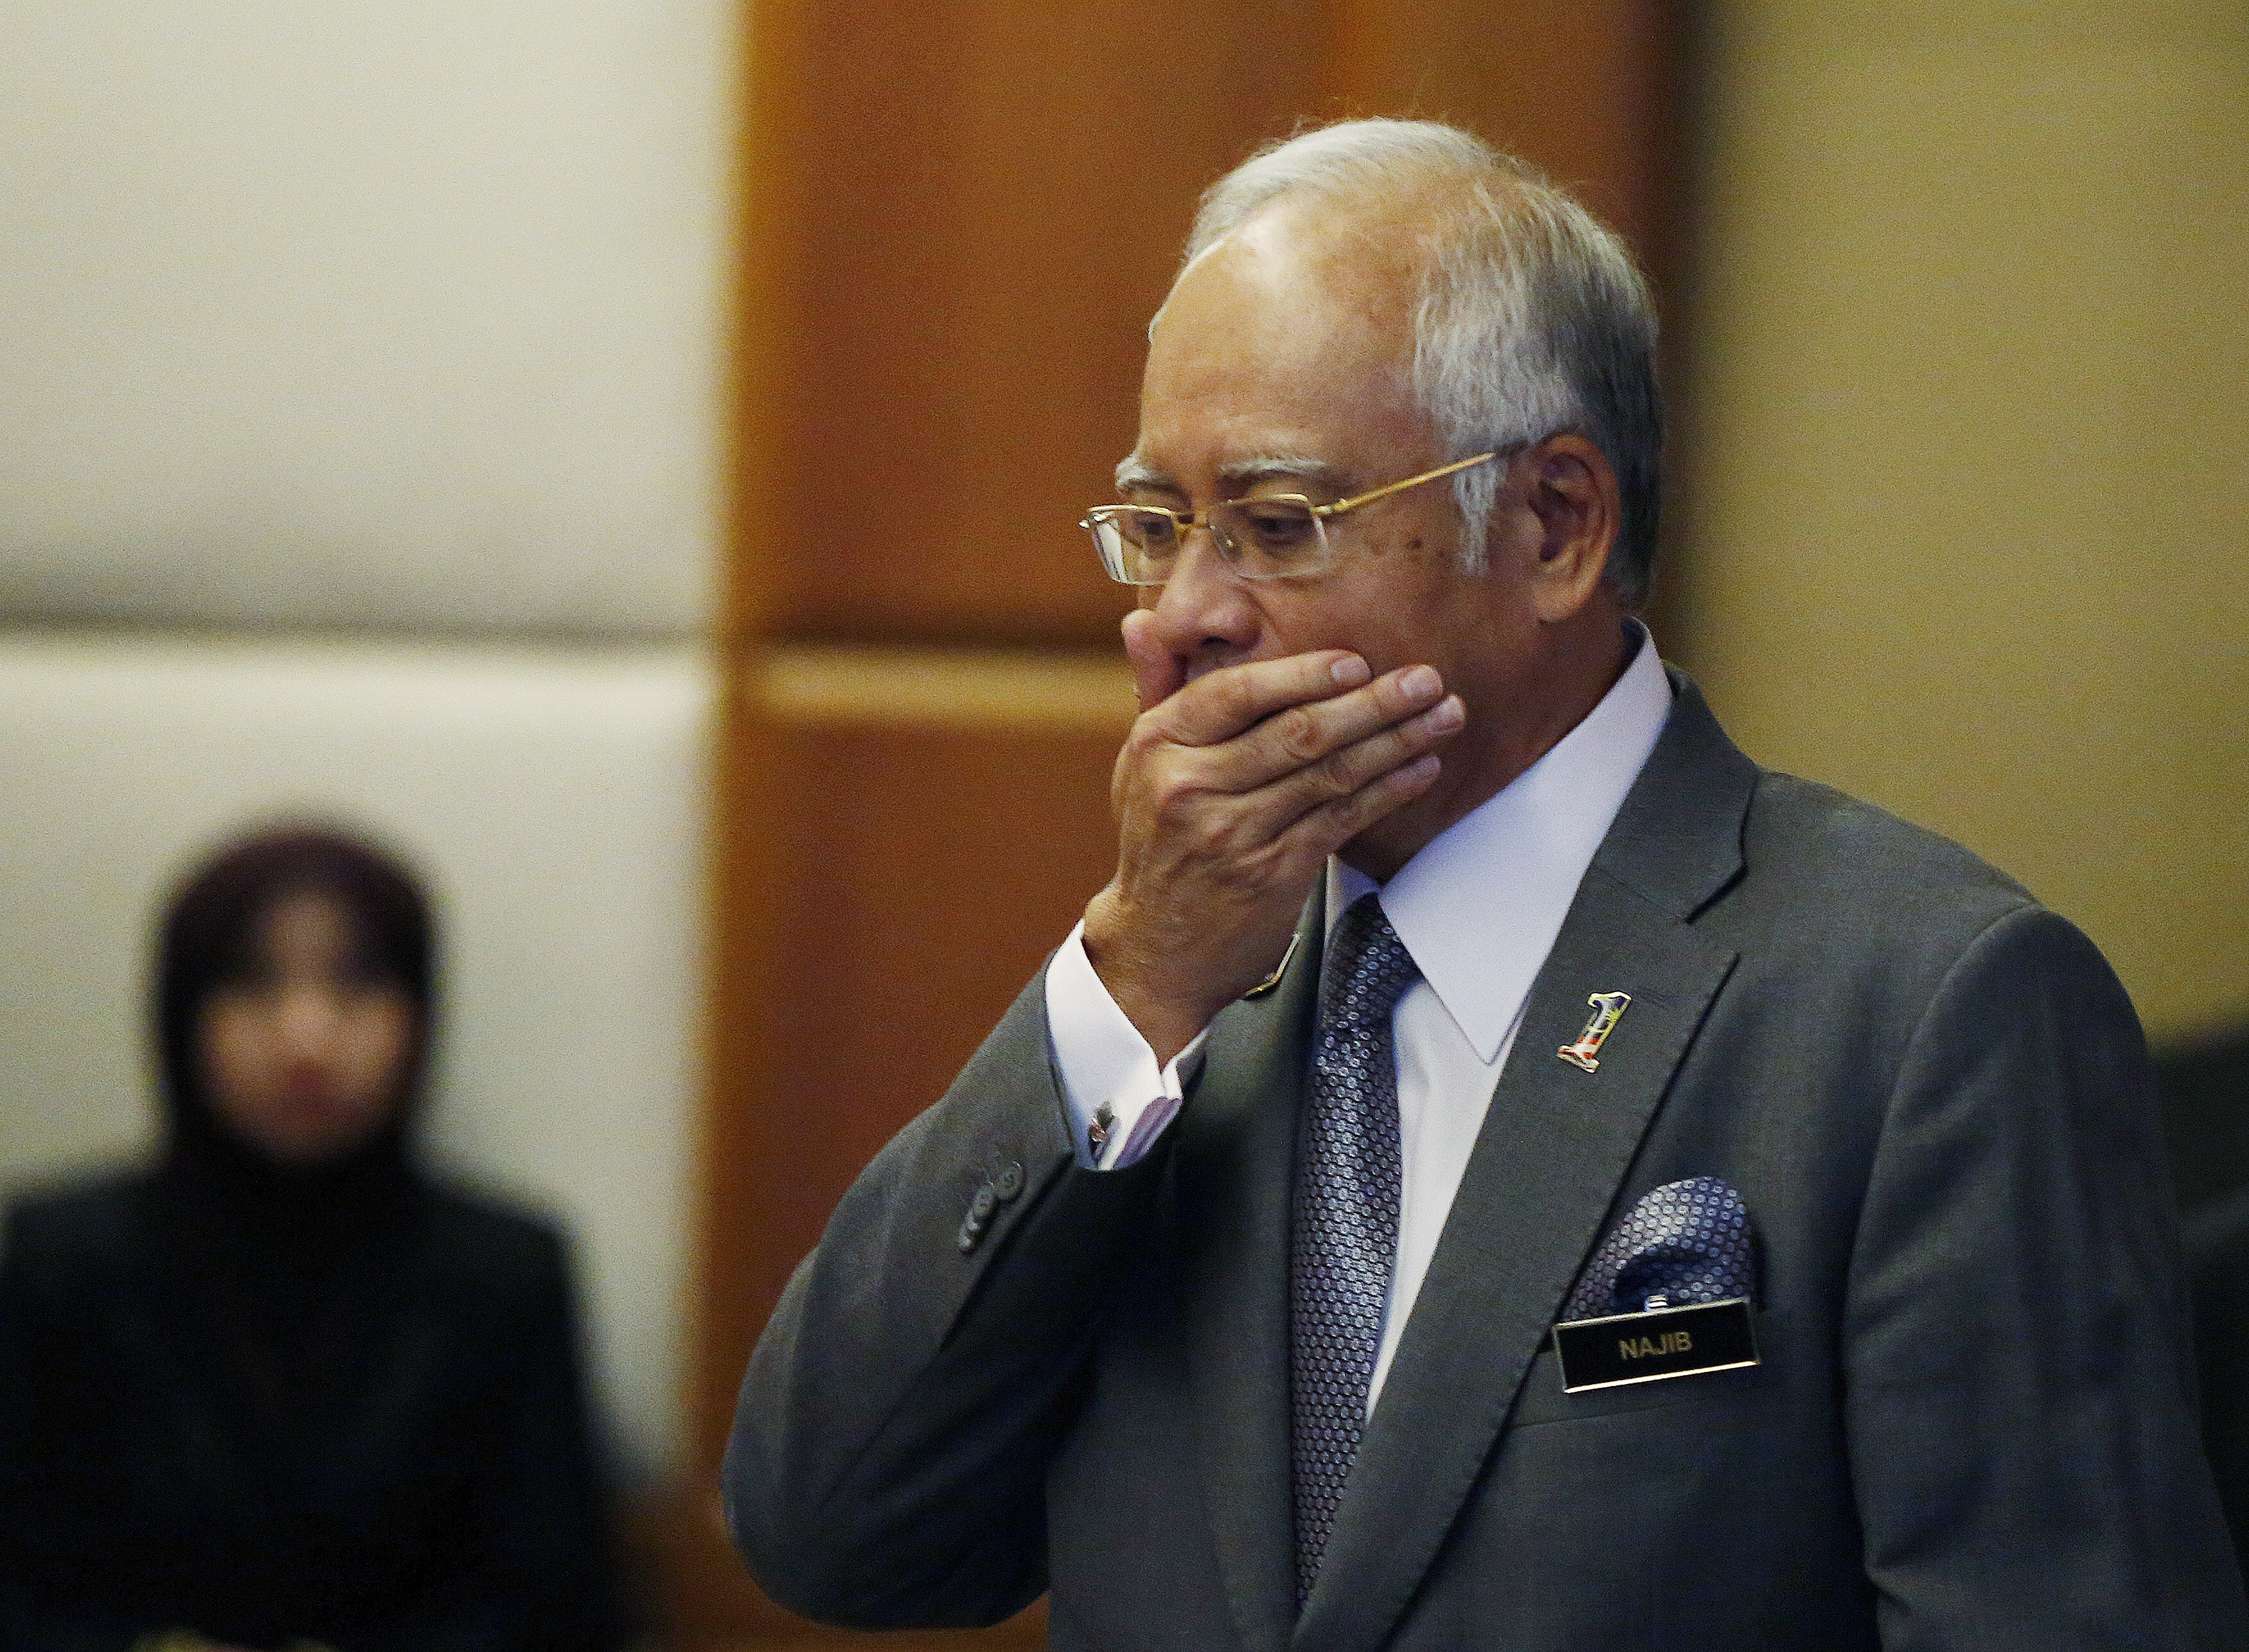 Malaysia in turmoil as PM focuses on survival